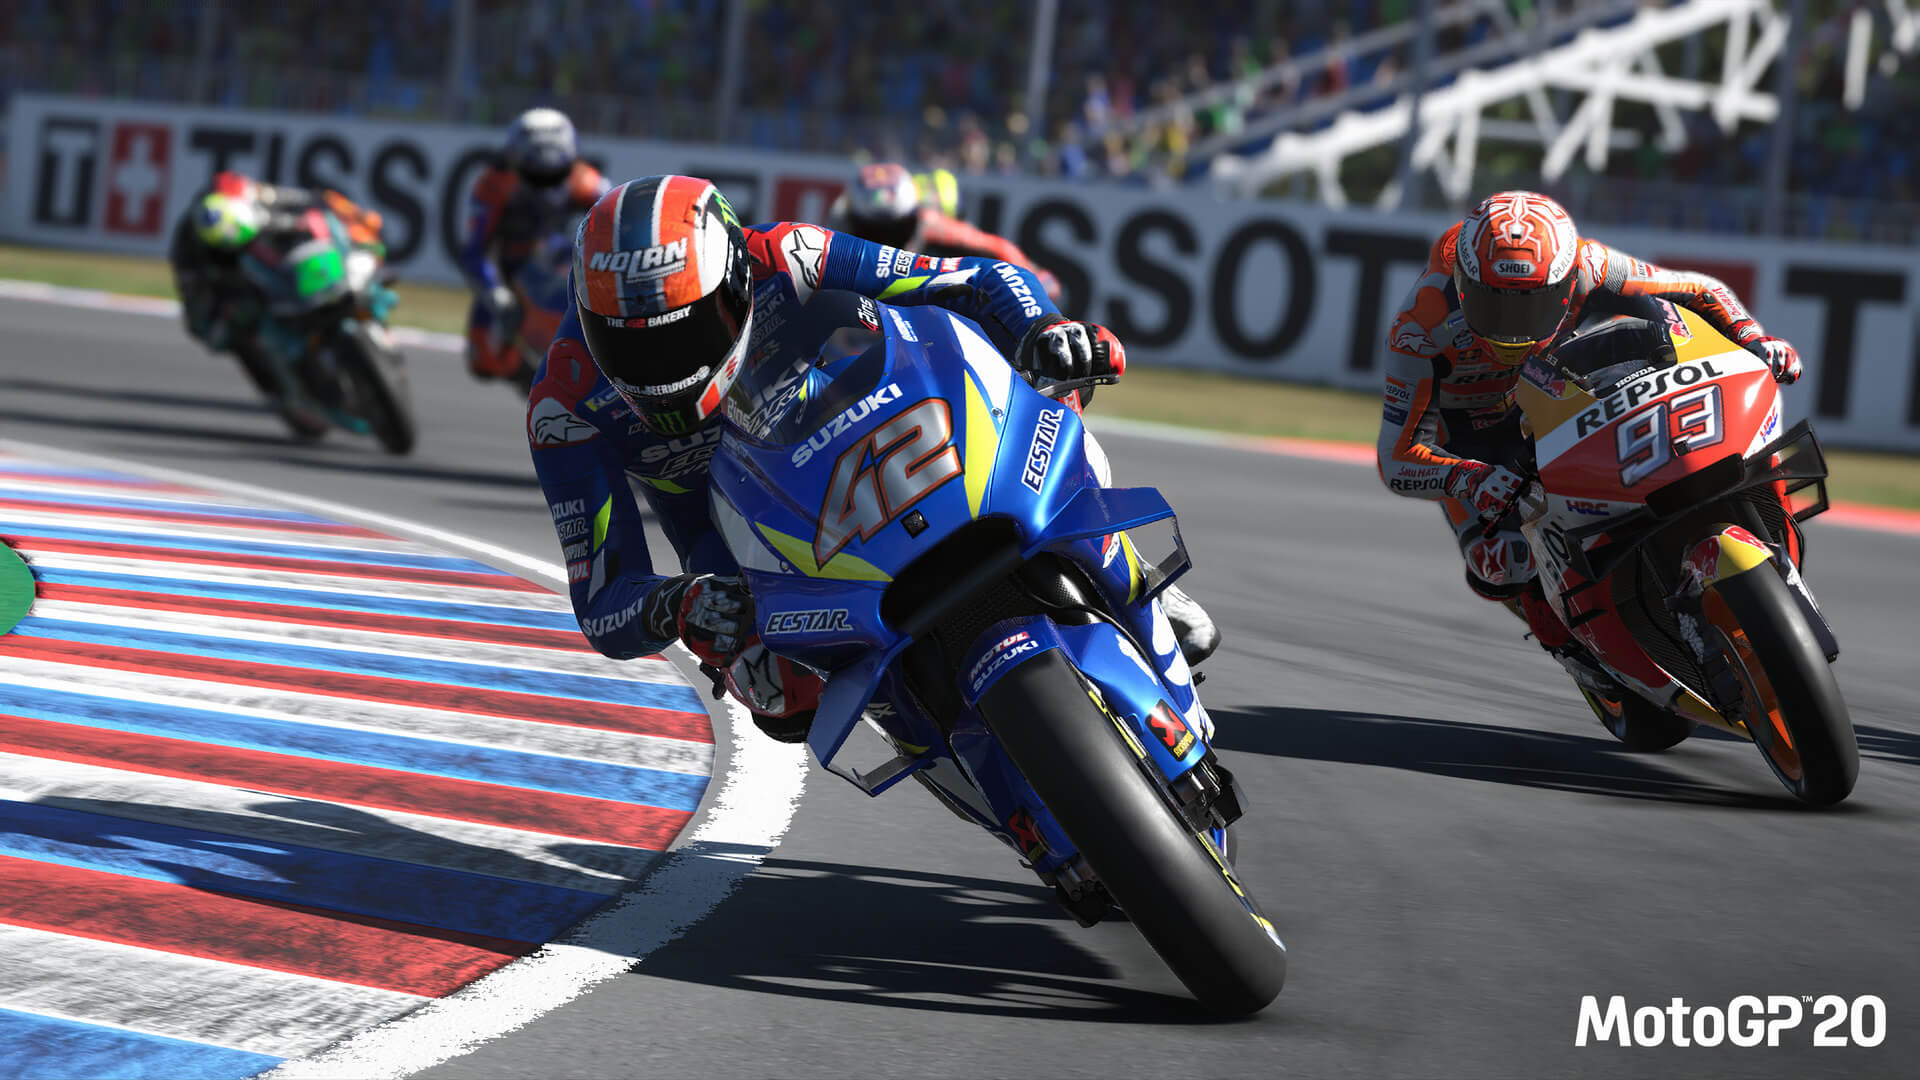 MotoGP 20 is coming to the PC on April 23rd - DSOGaming